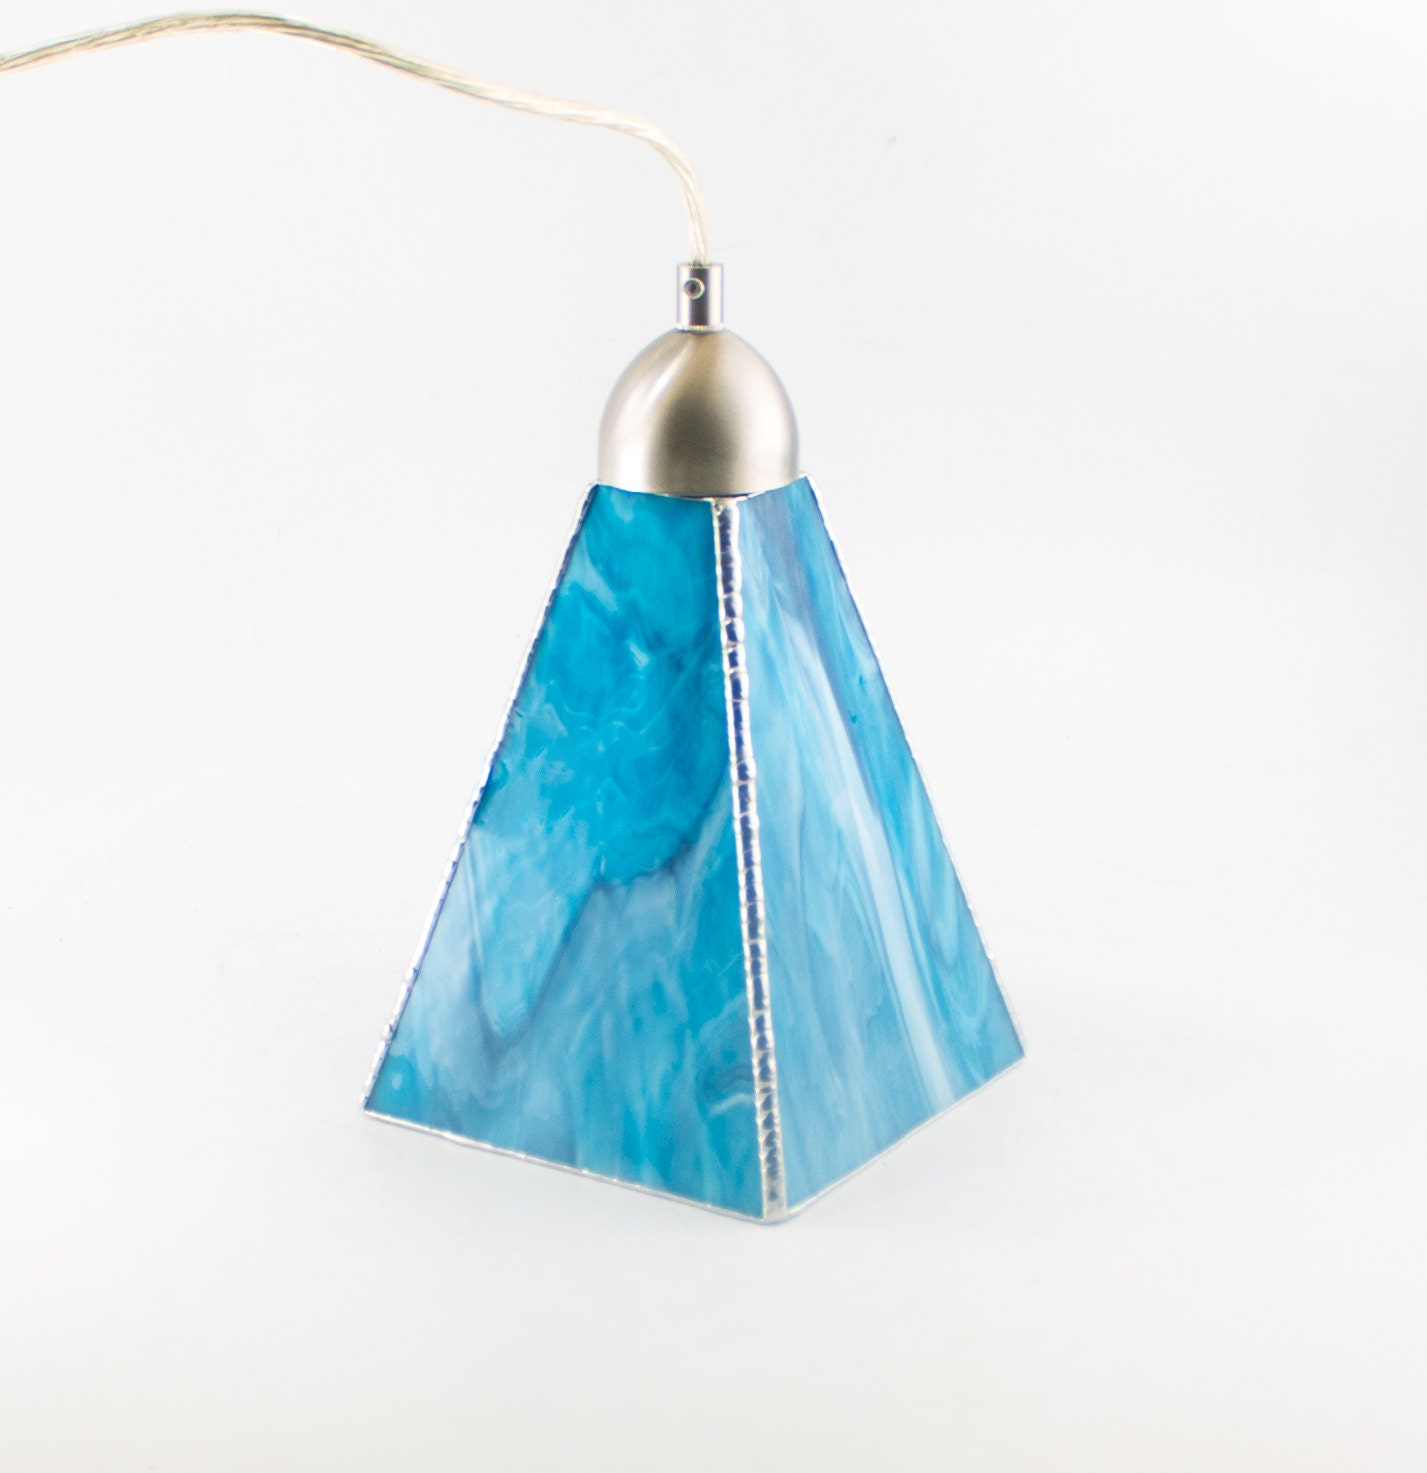 Aqua blue art glass pendant lighting kitchen island ceiling light fixture stained glass hanging lamp choice of hardware